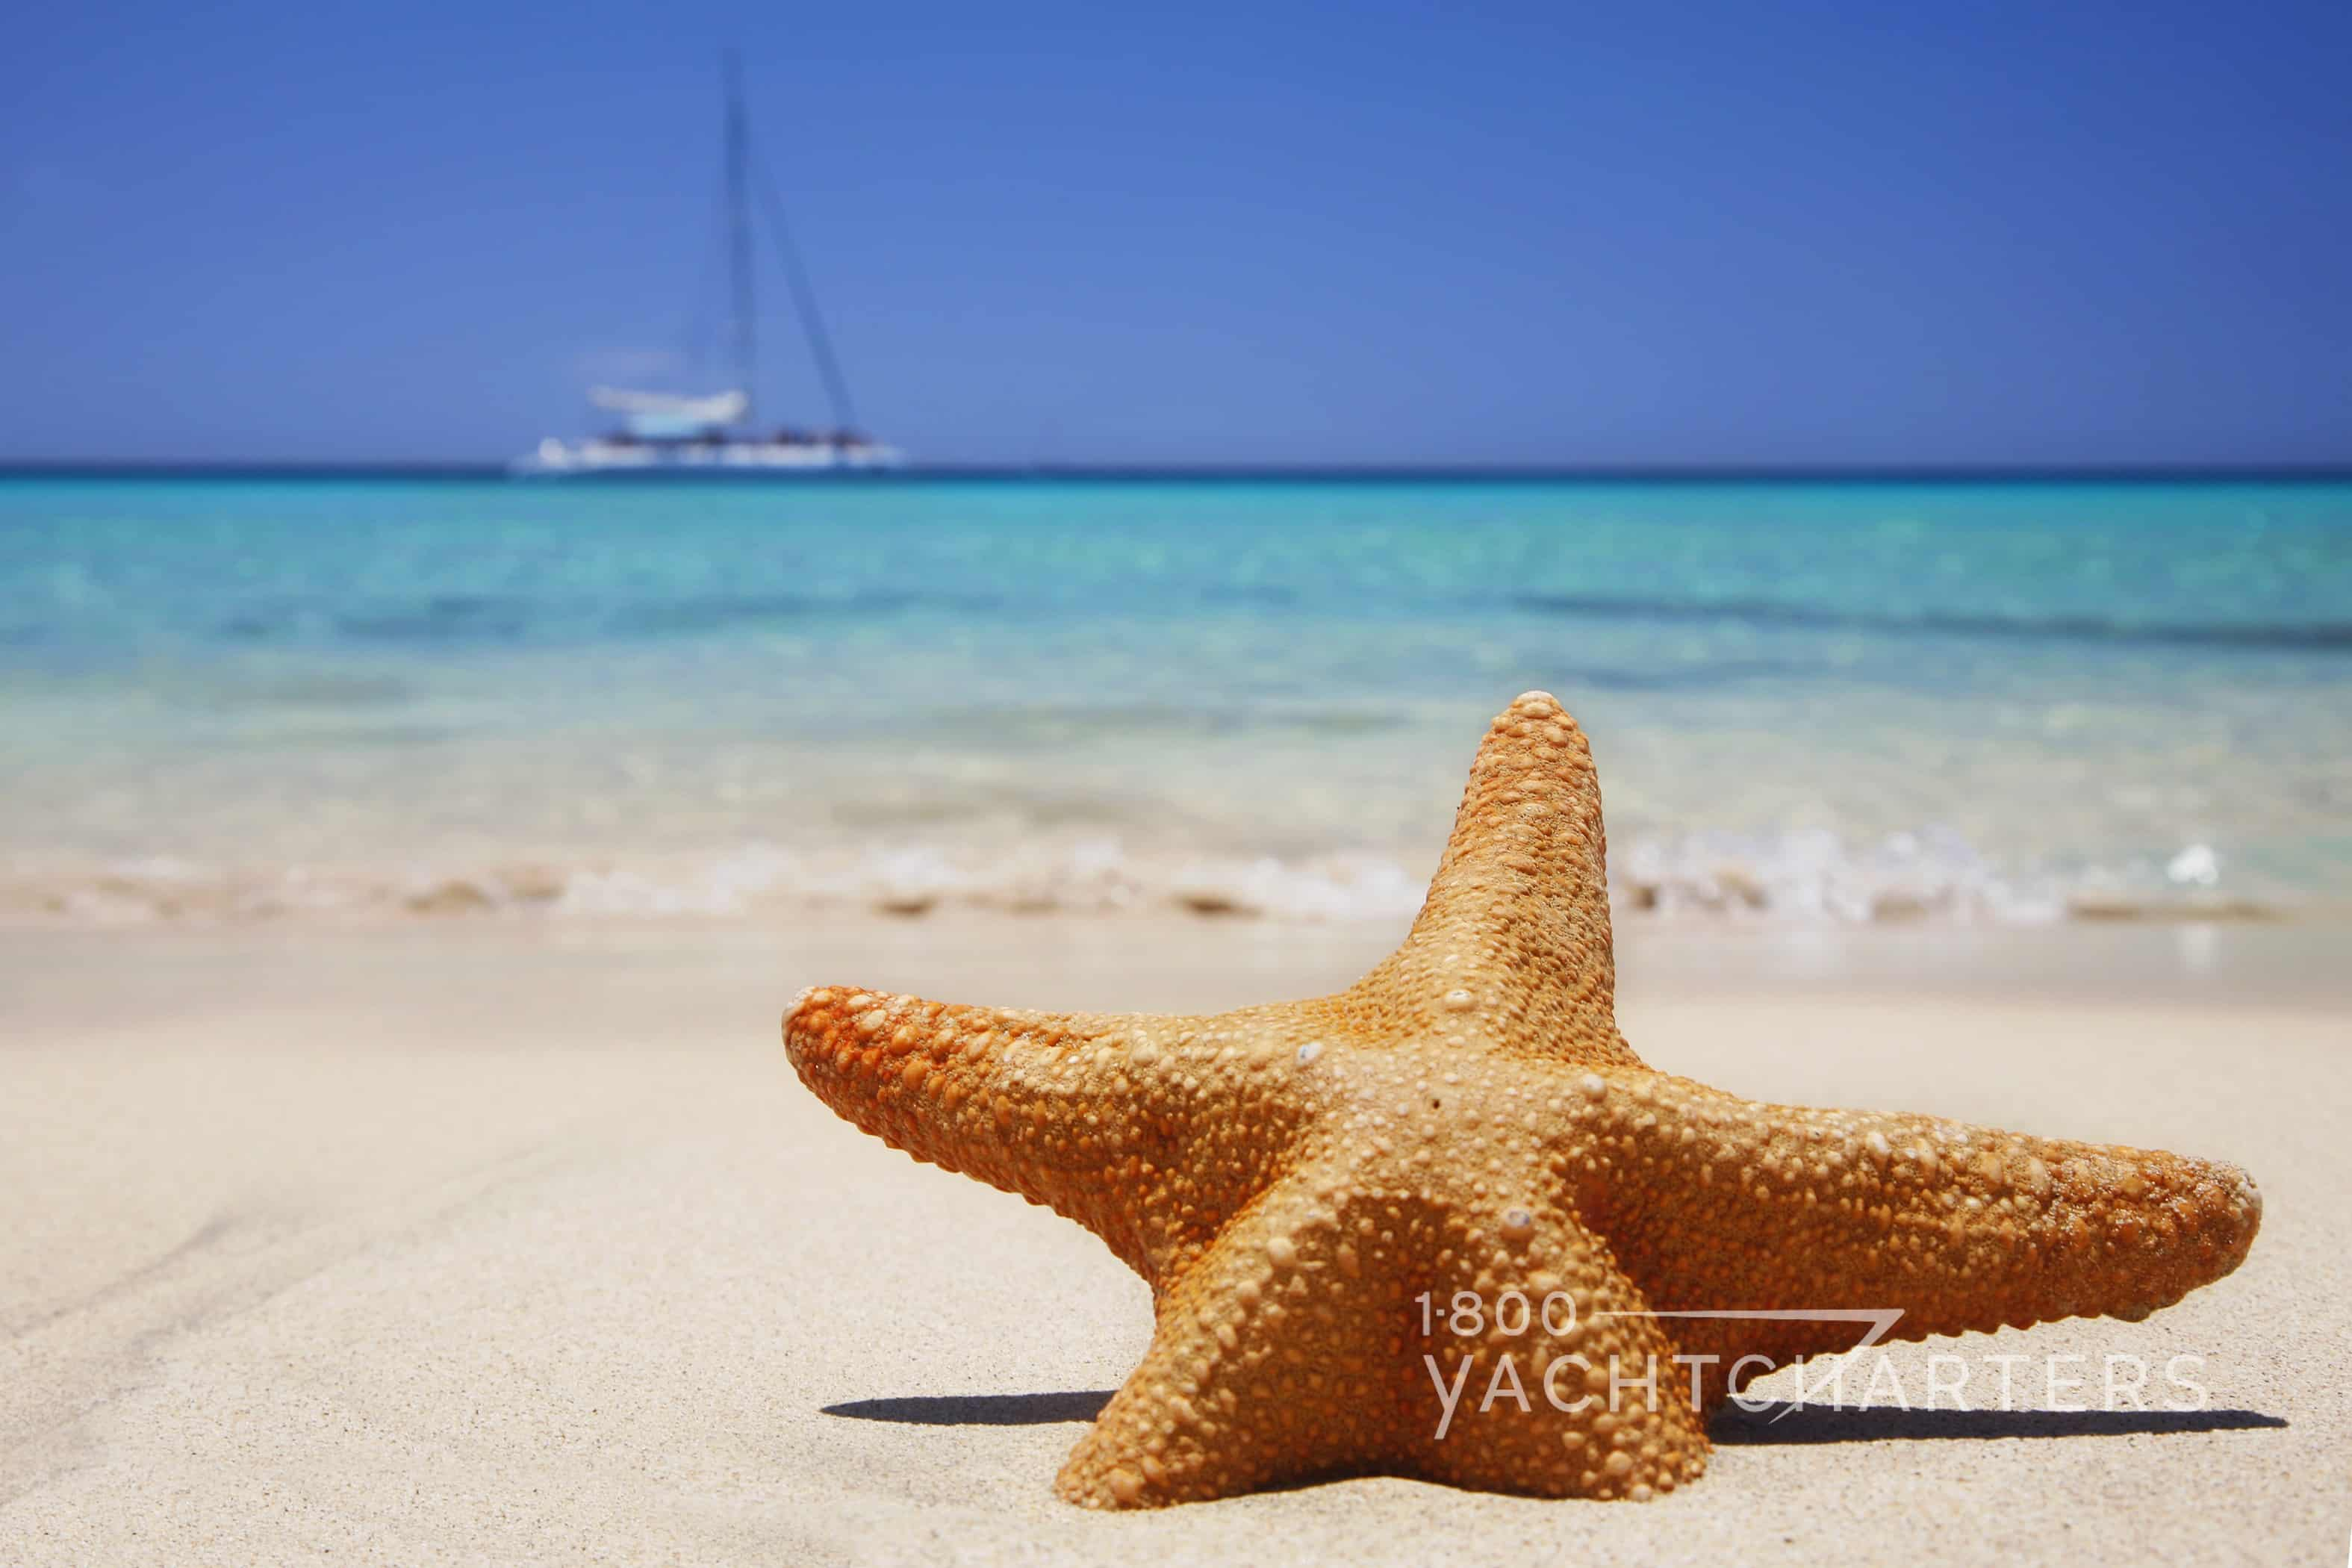 starfish in the sand with sailboat anchored in the sea in the background